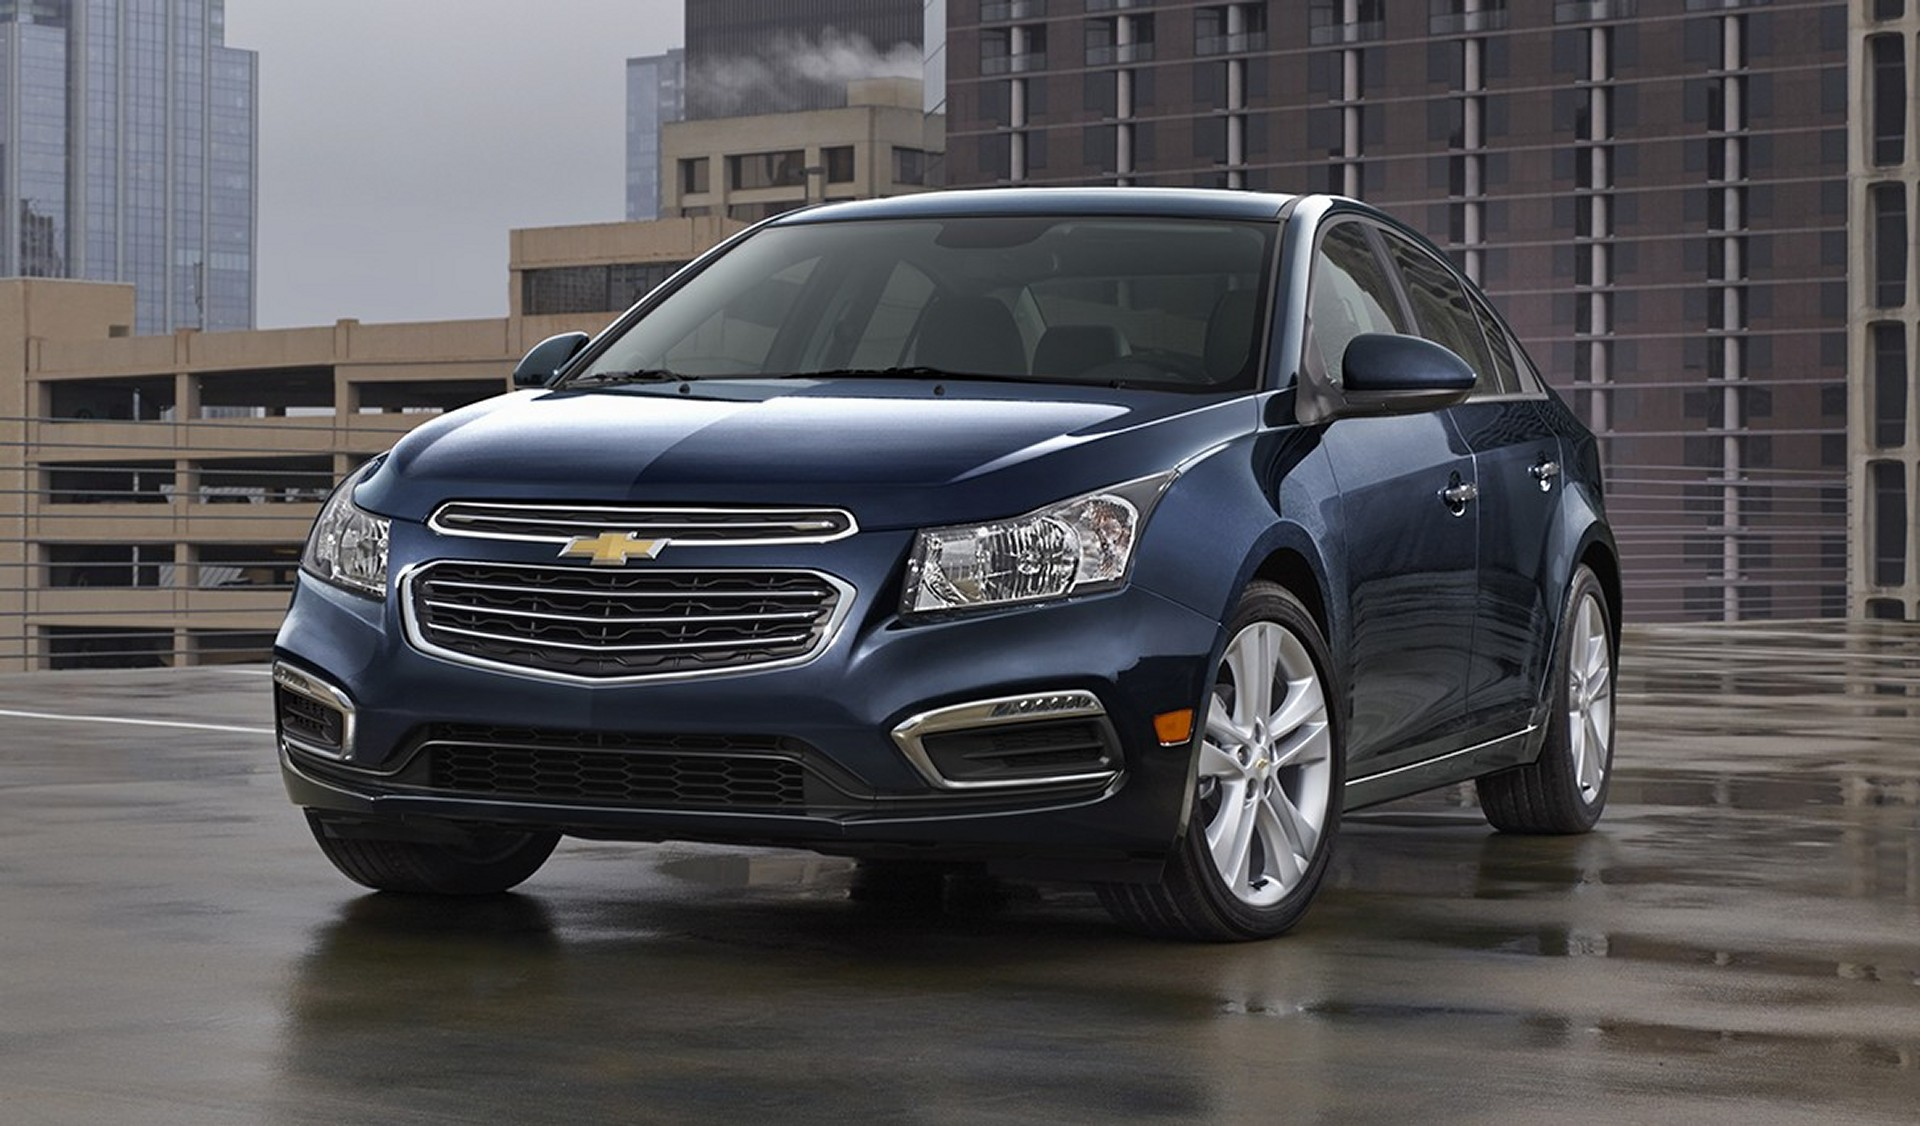 2015 Chevrolet Cruze Chevy Review Ratings Specs